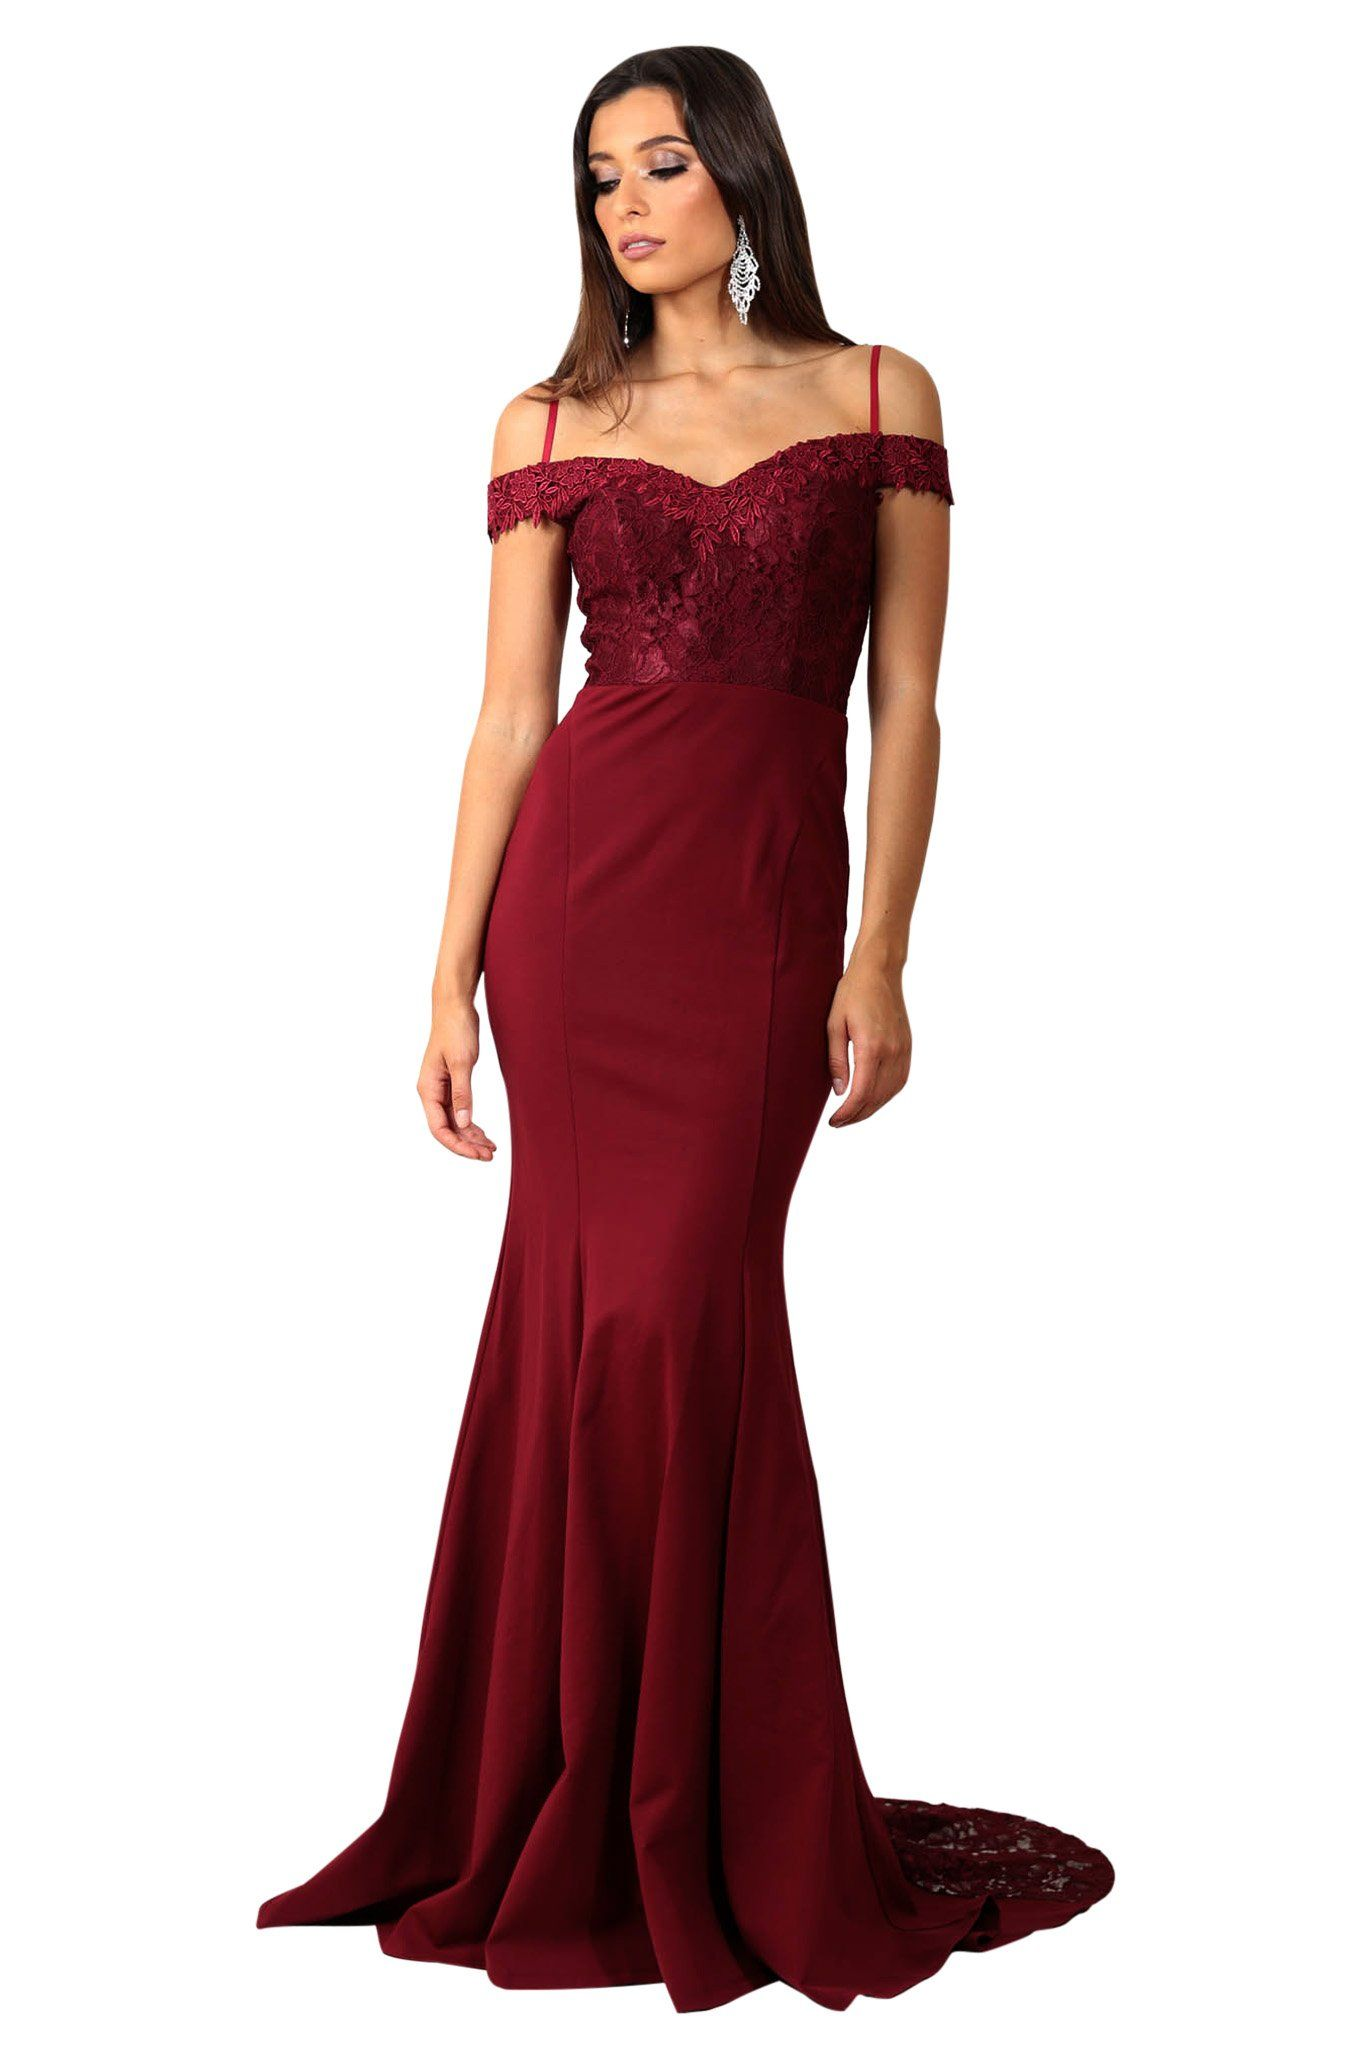 Deep Red Floor Length Dress in Open Off The Shoulder Design, Lace Bodice and Lace Godet Train